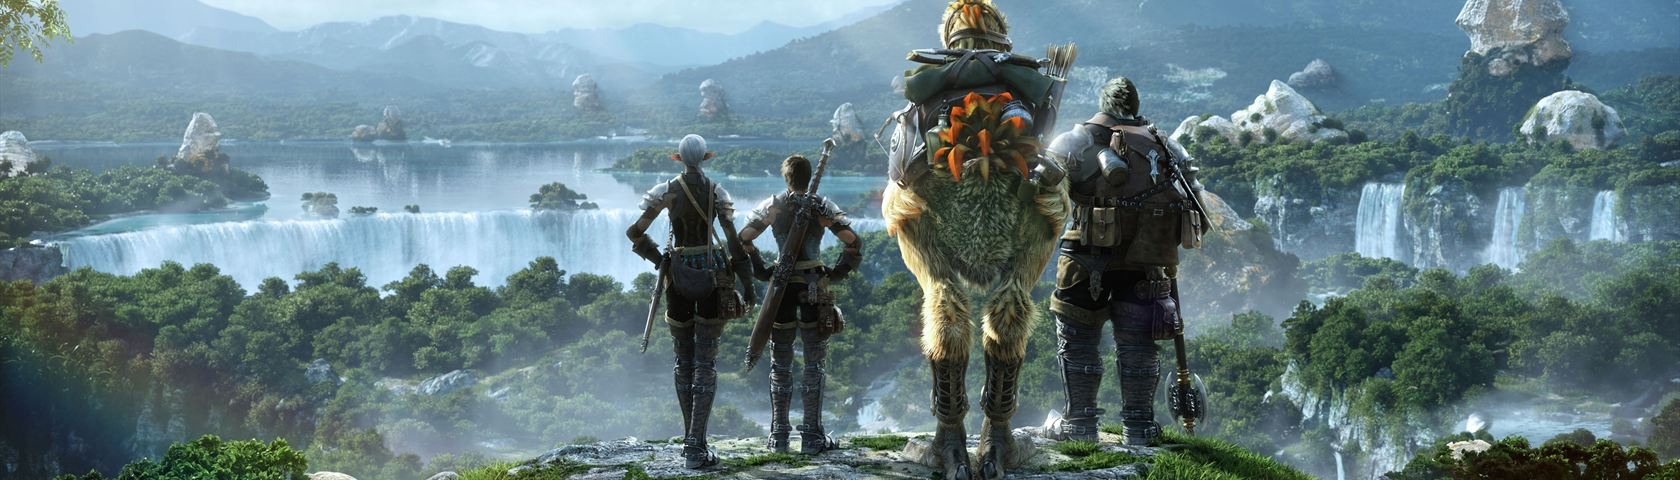 final fantasy xi � images � wallpaperfusion by binary